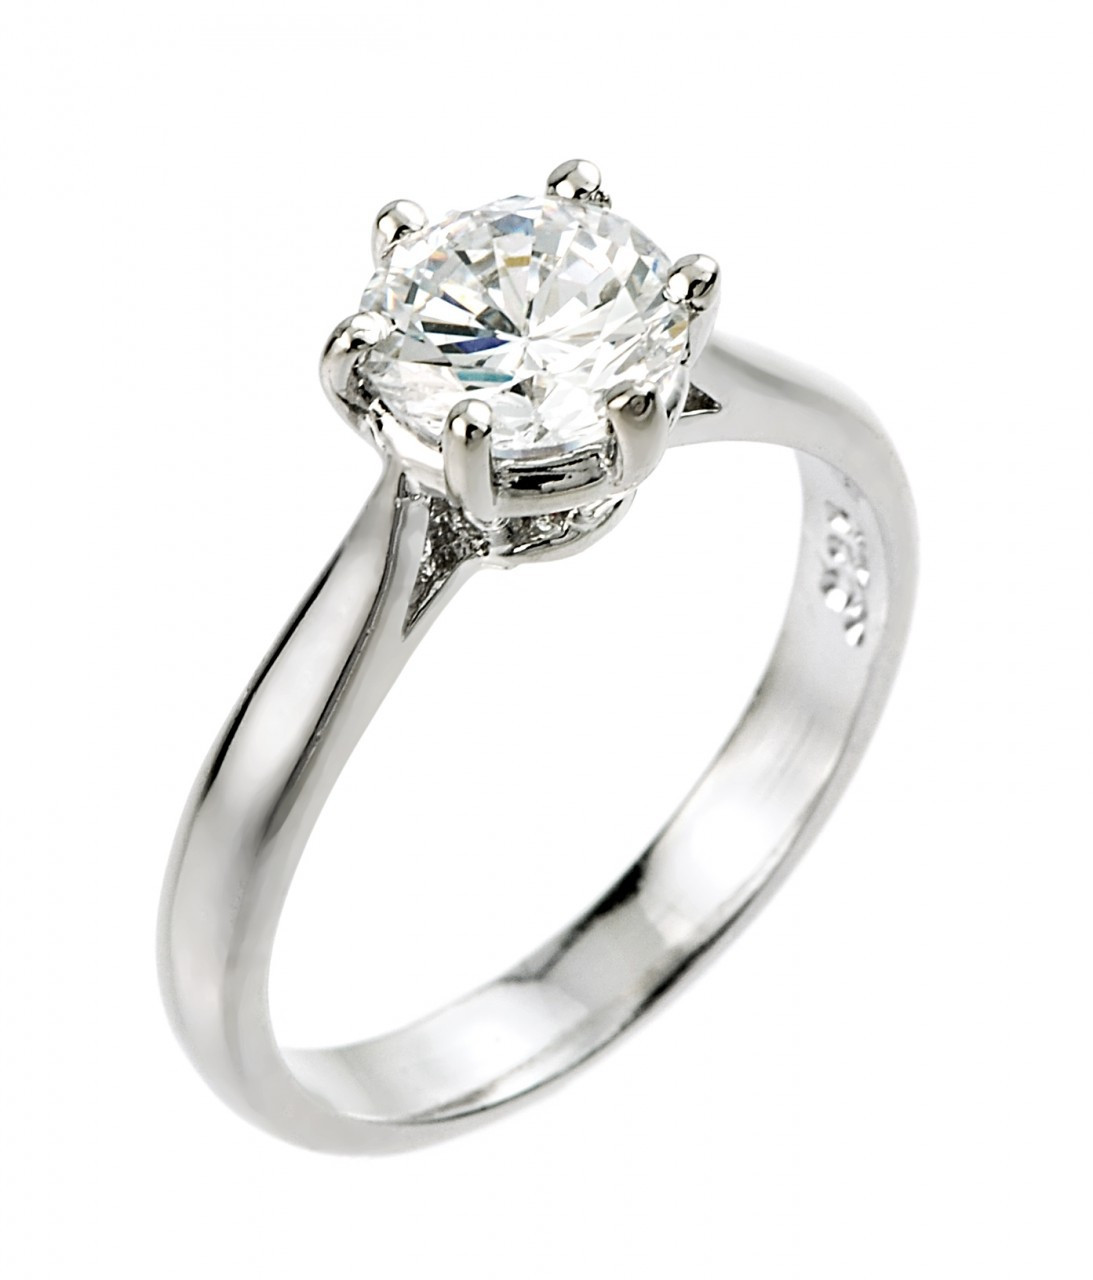 Engagement Ring Cz Engagement Ring White Gold Cz Engagement Ring Cz Solitaire Engagement Ring Round Cz Engagement Ring 1 Ct Cz Engagement Ring